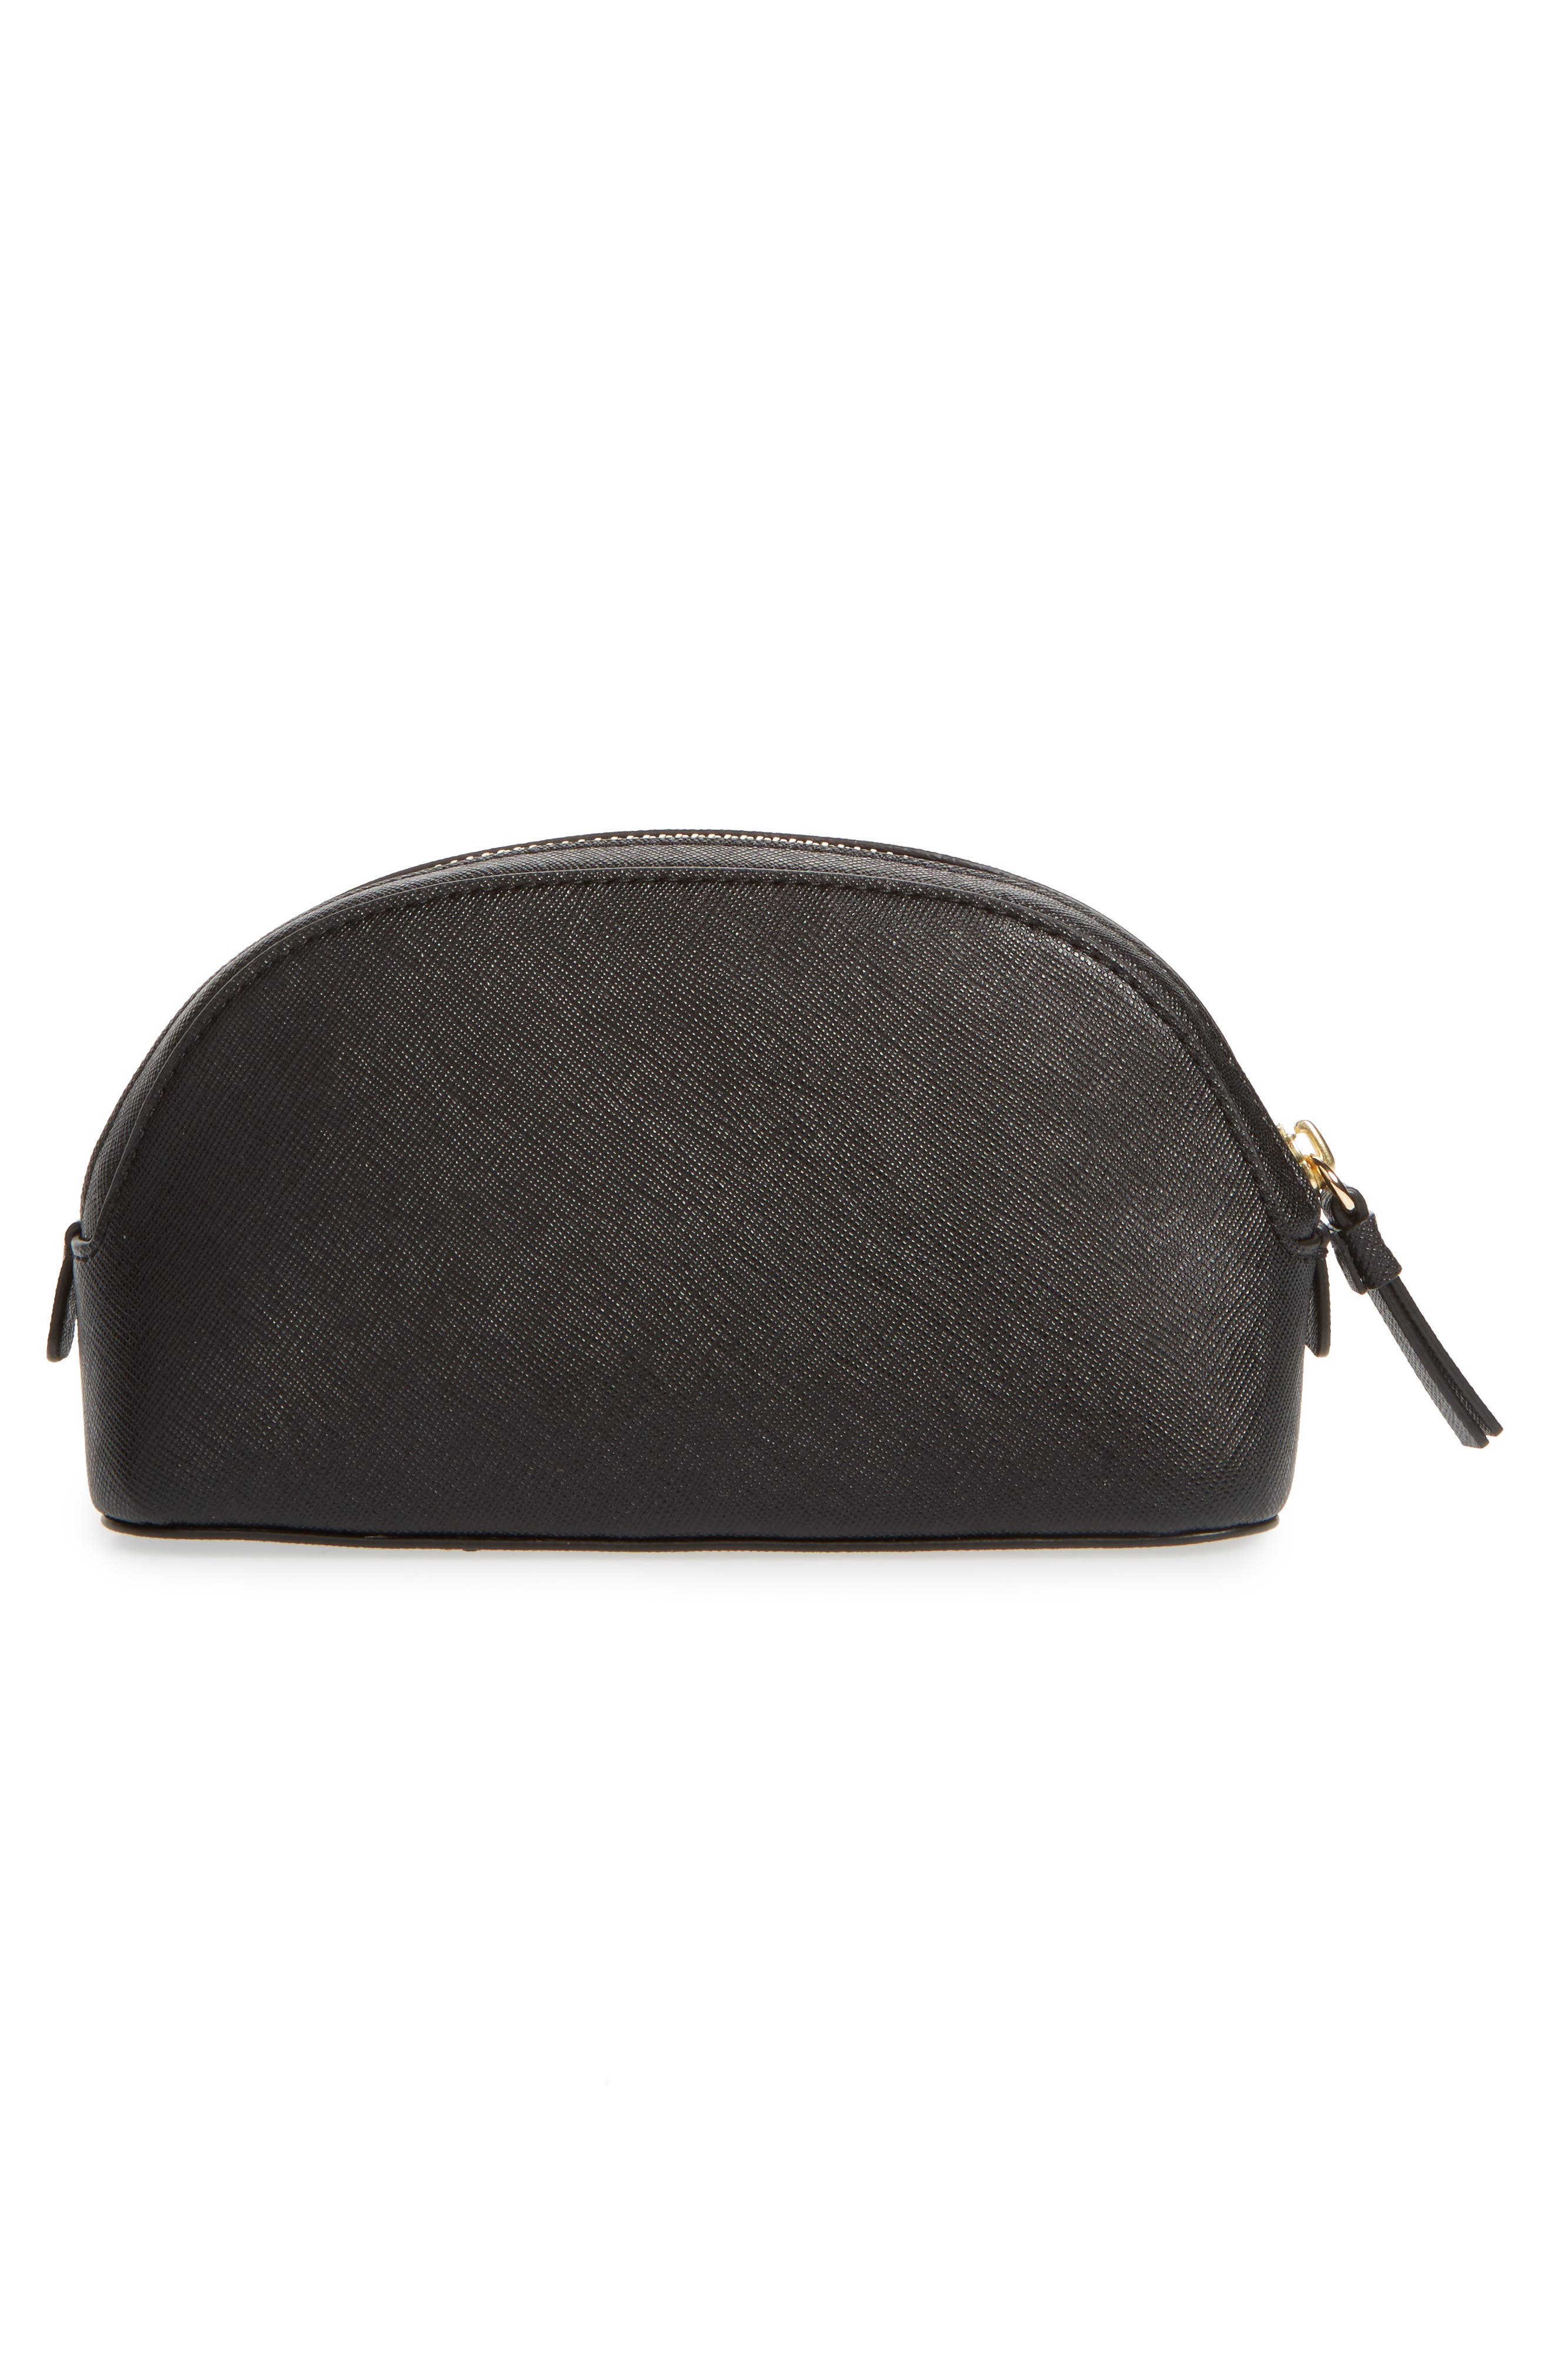 Robinson Small Leather Cosmetic Bag,                             Alternate thumbnail 2, color,                             BLACK / ROYAL NAVY